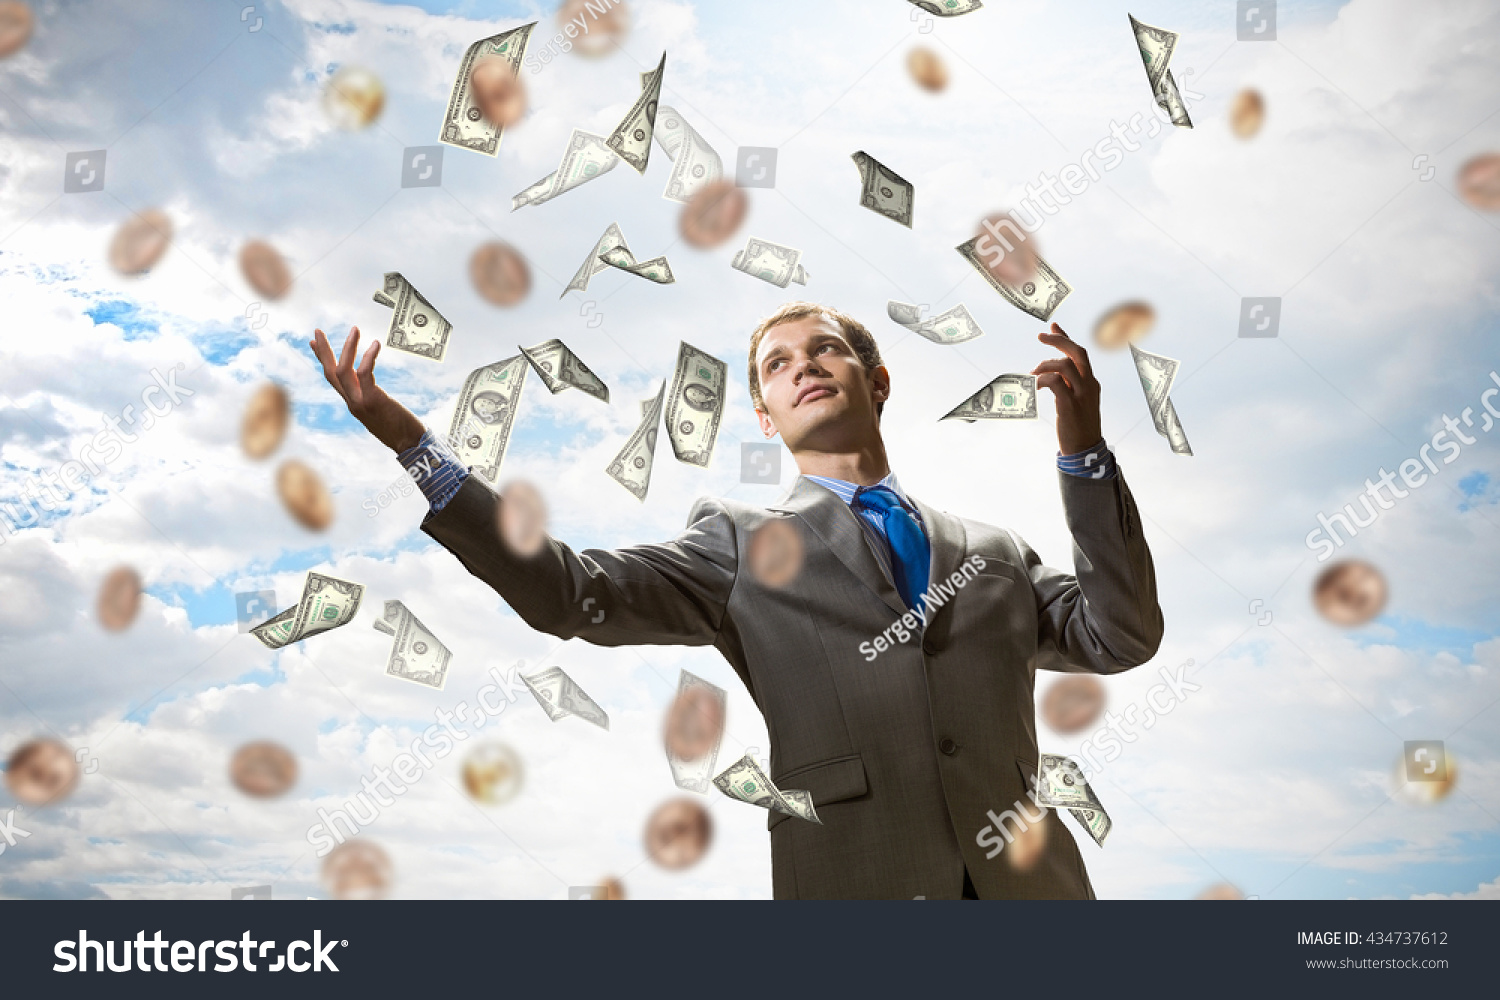 how to become rich with stocks